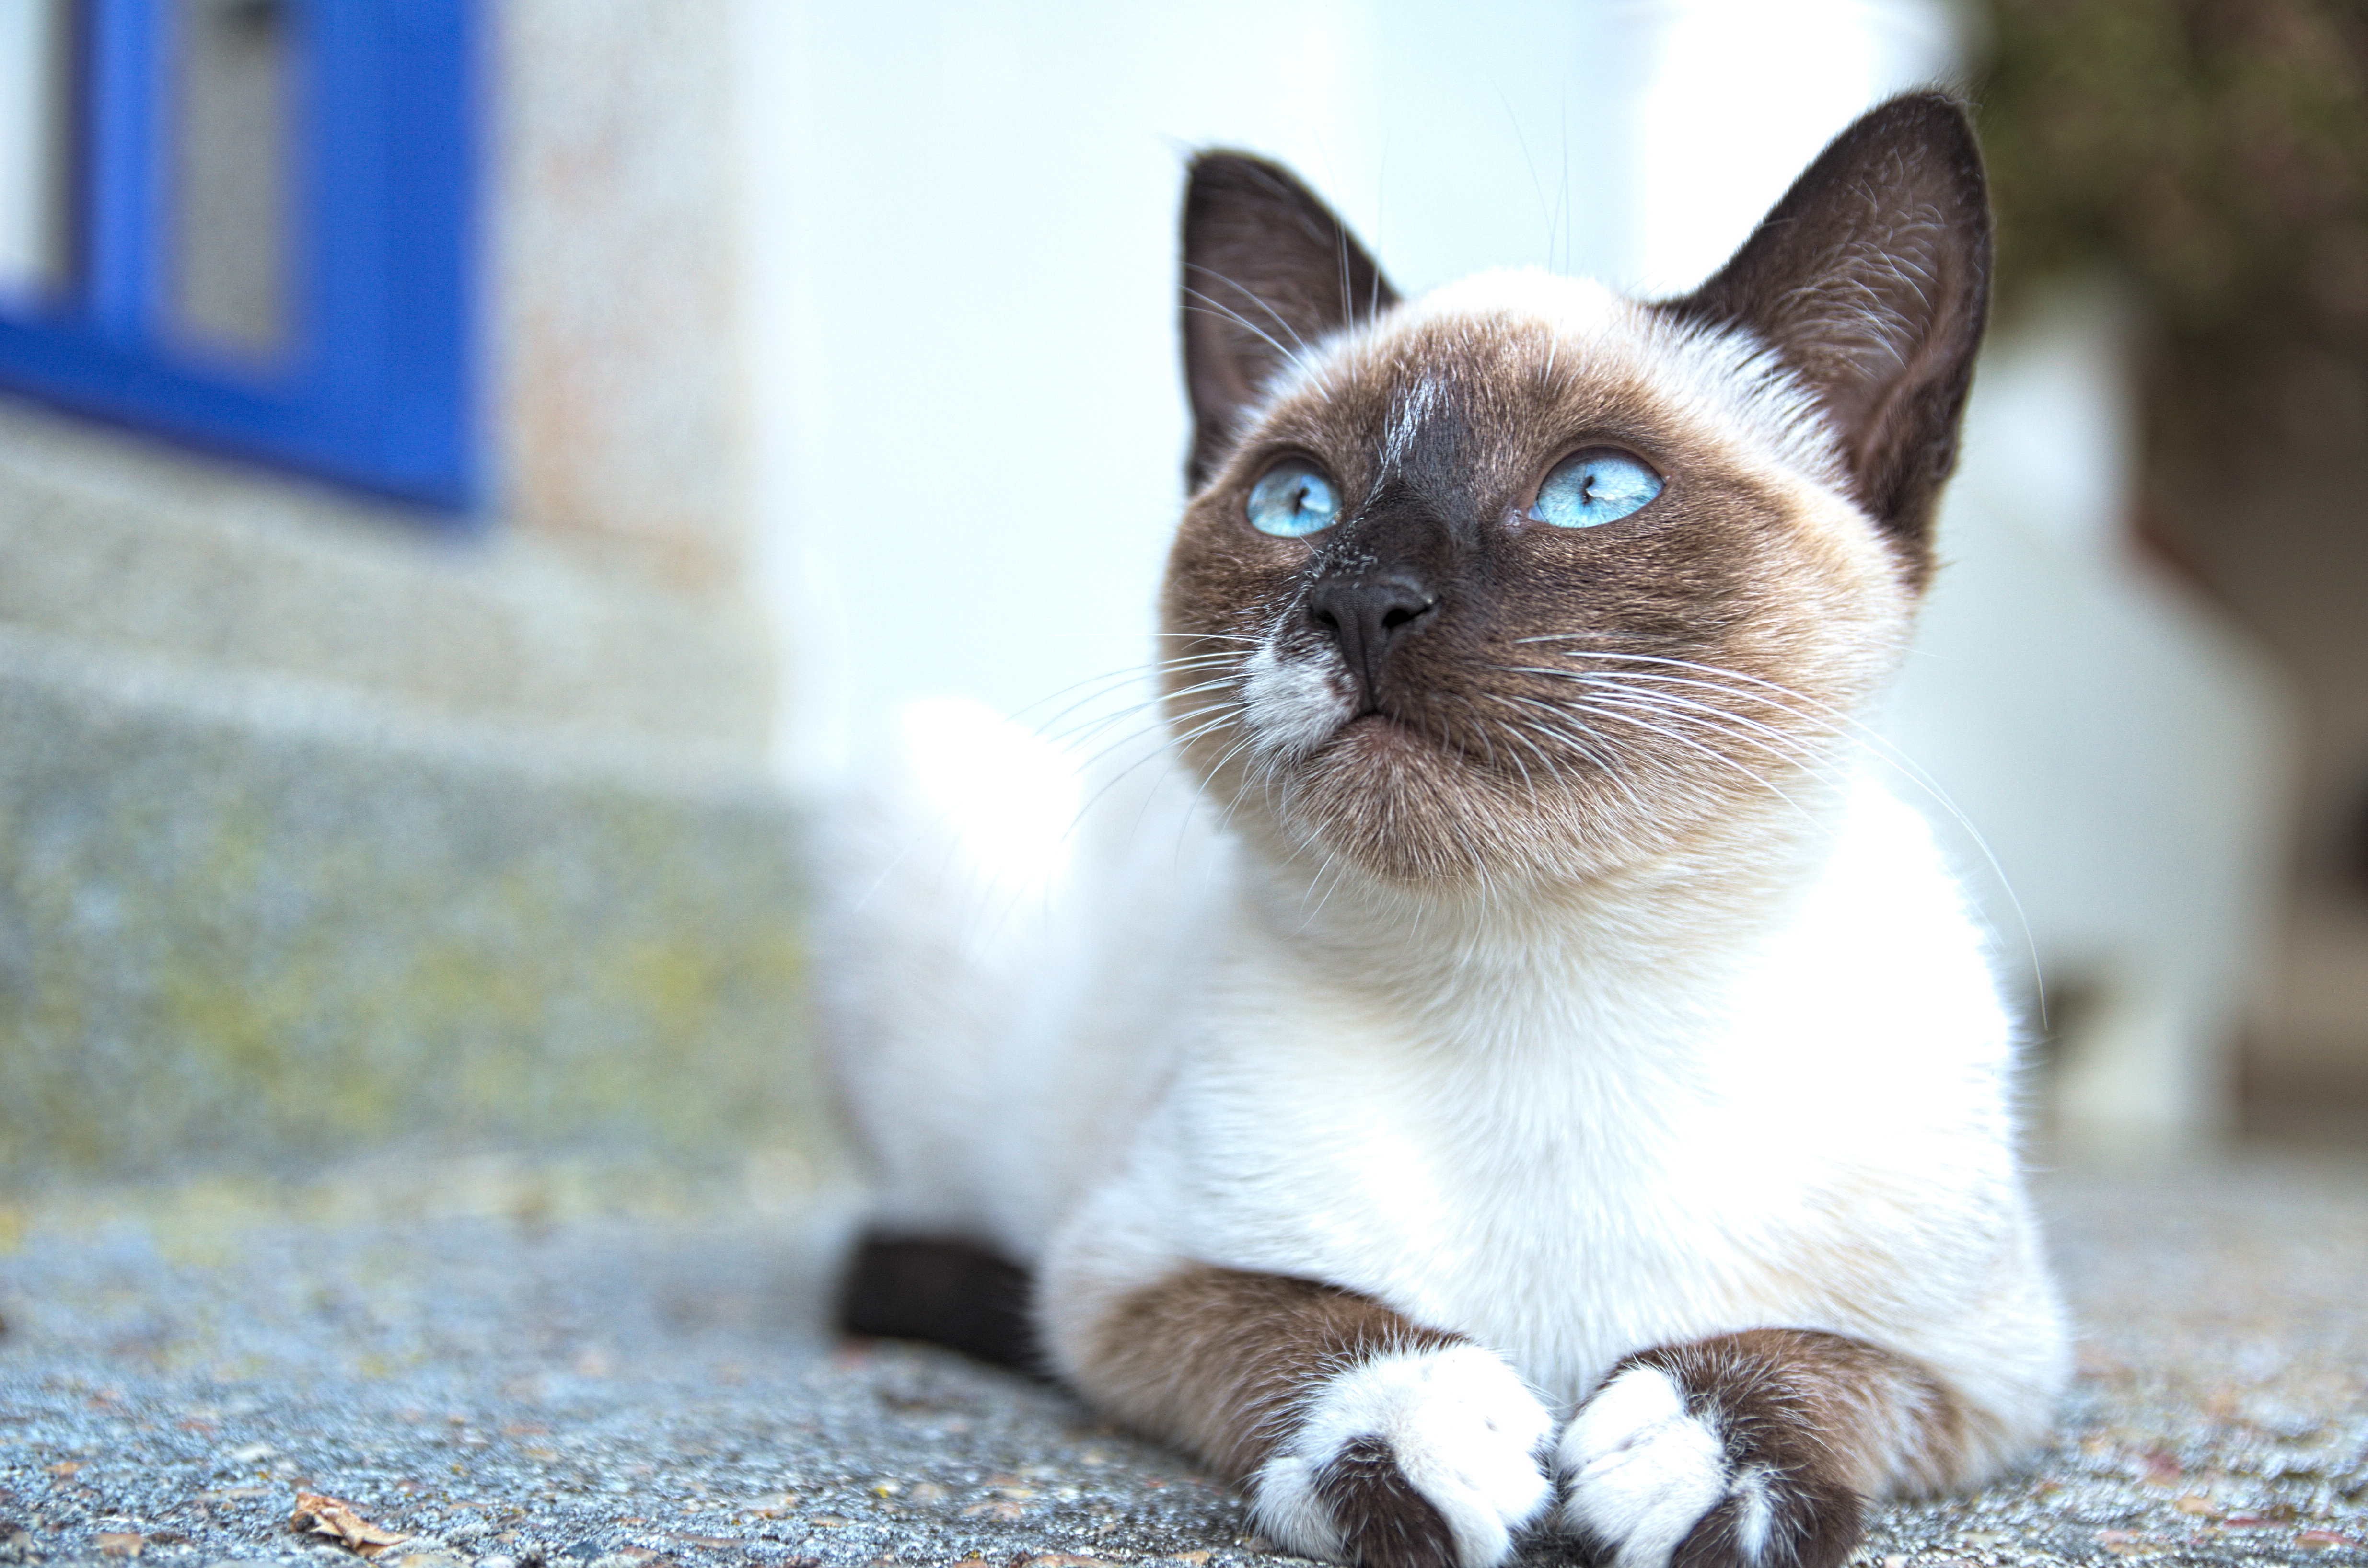 What causes bad breath in cats - Royal Canin